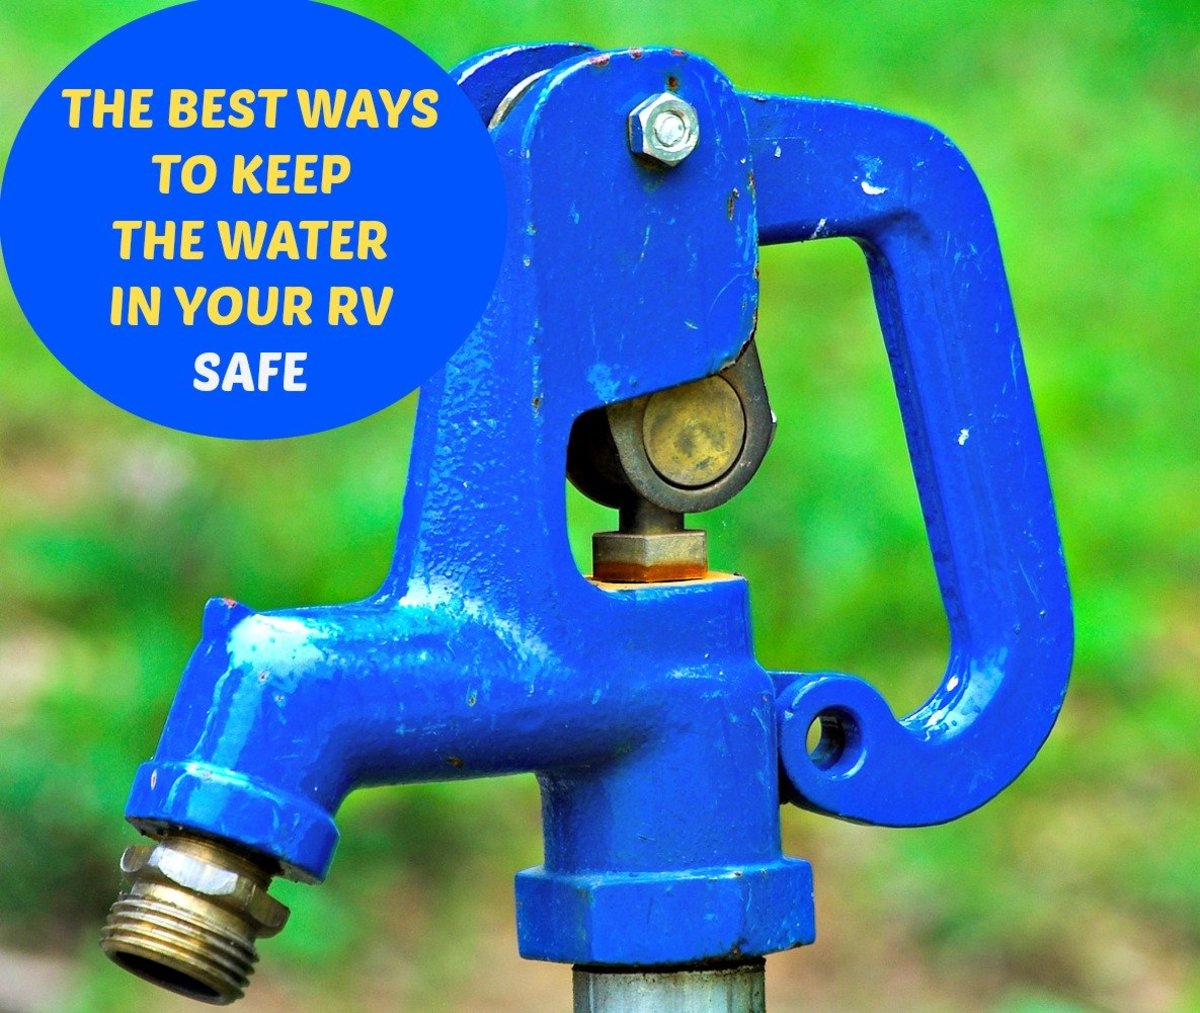 The Best Ways to Keep the Water in Your RV Safe